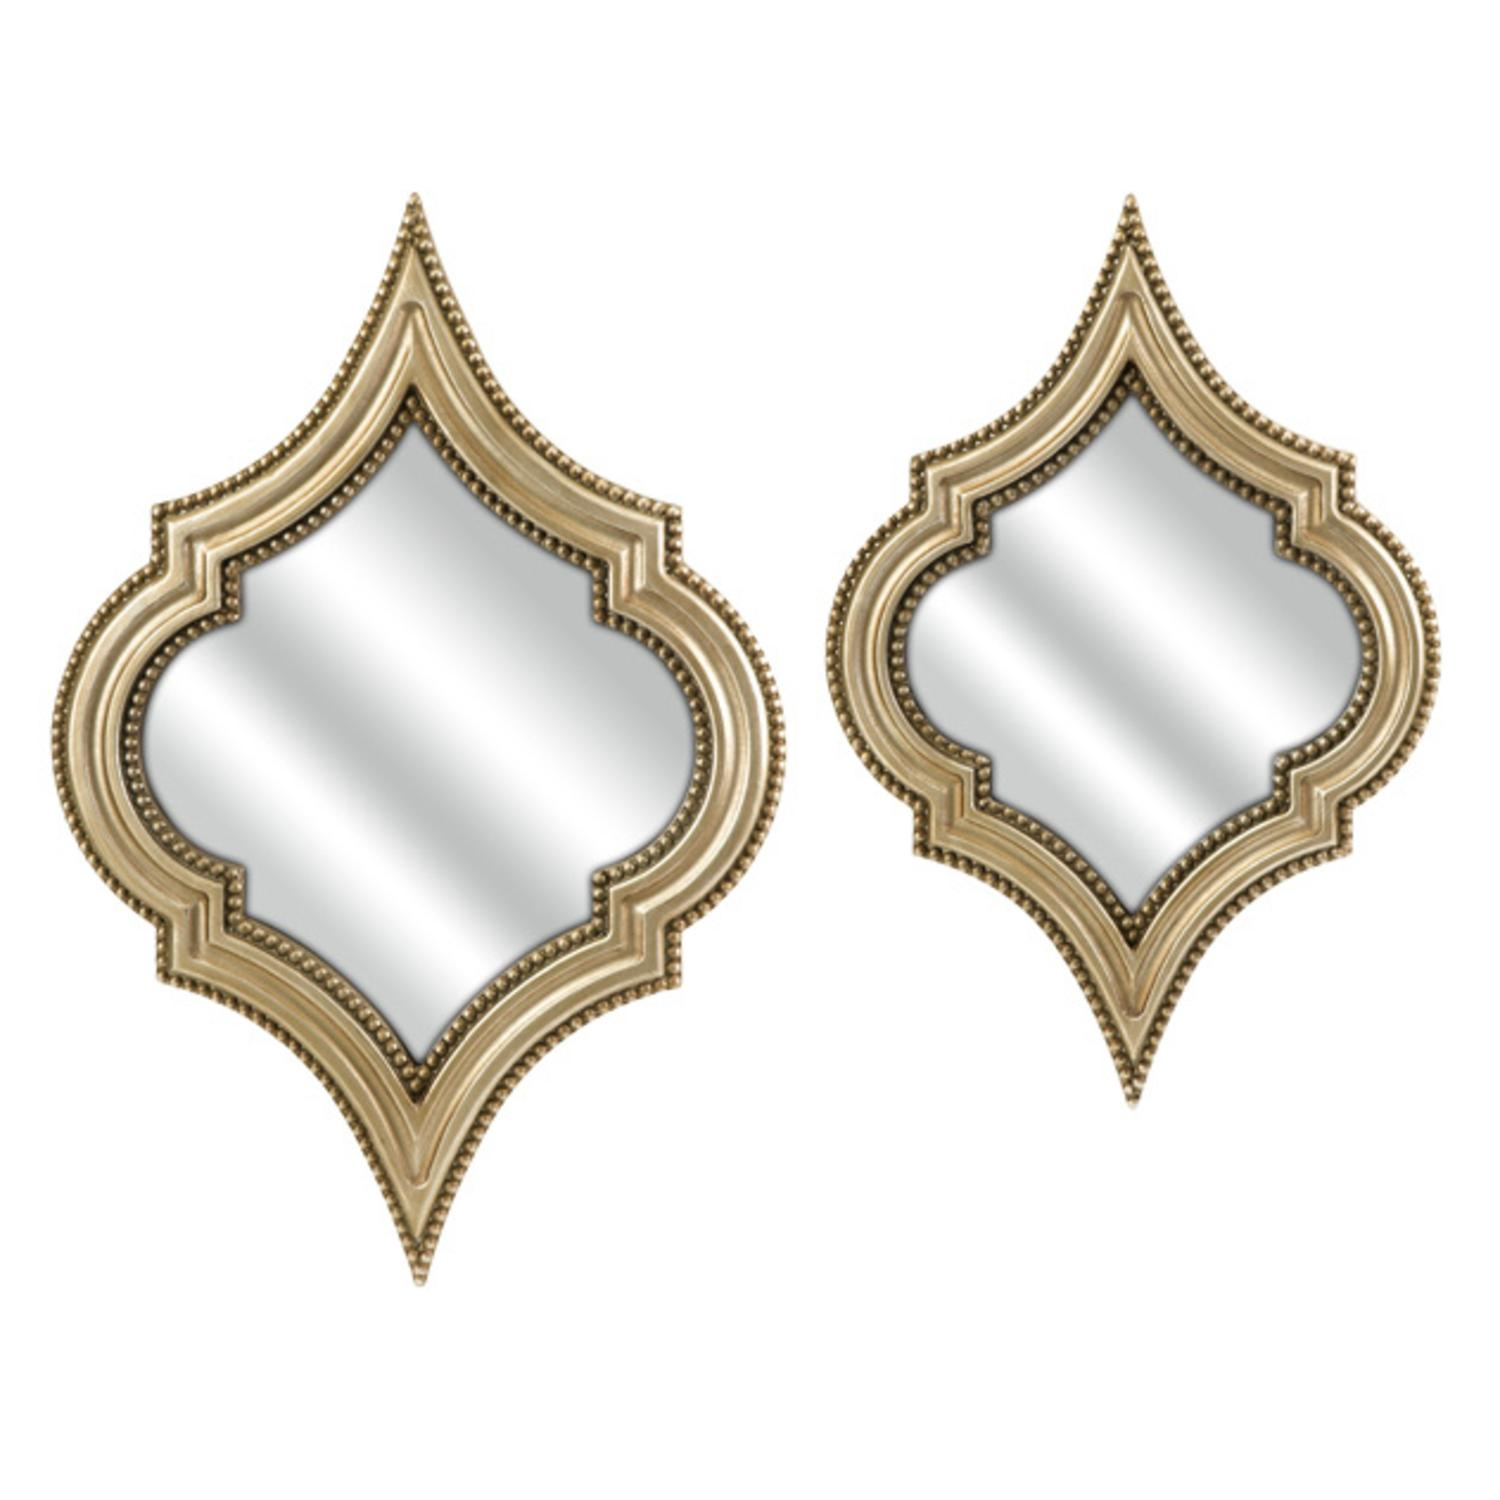 Set of 2 Malena Moroccan Inspired Gold Champagne Wall Mirrors 27""